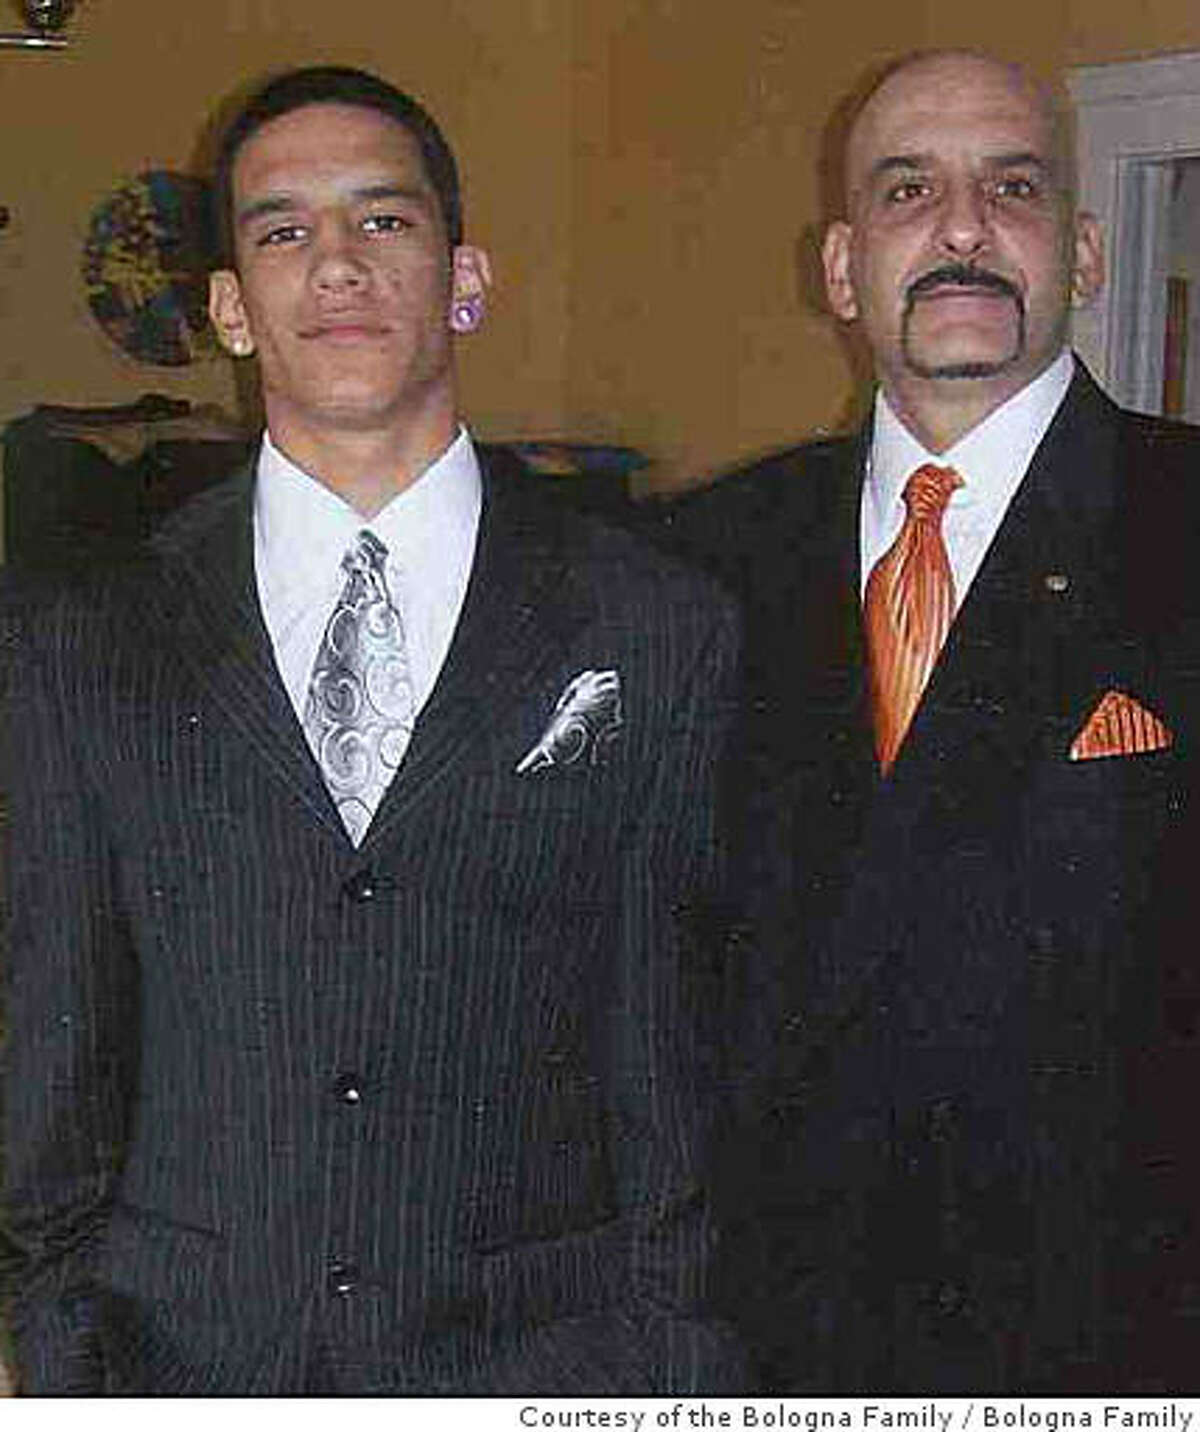 Tony Bologna, right, and his 20-year-old son, Michael, at a family function in 2008. They were slain in their car June 22, 2008, in San Francisco. Courtesy of the Bologna Family.